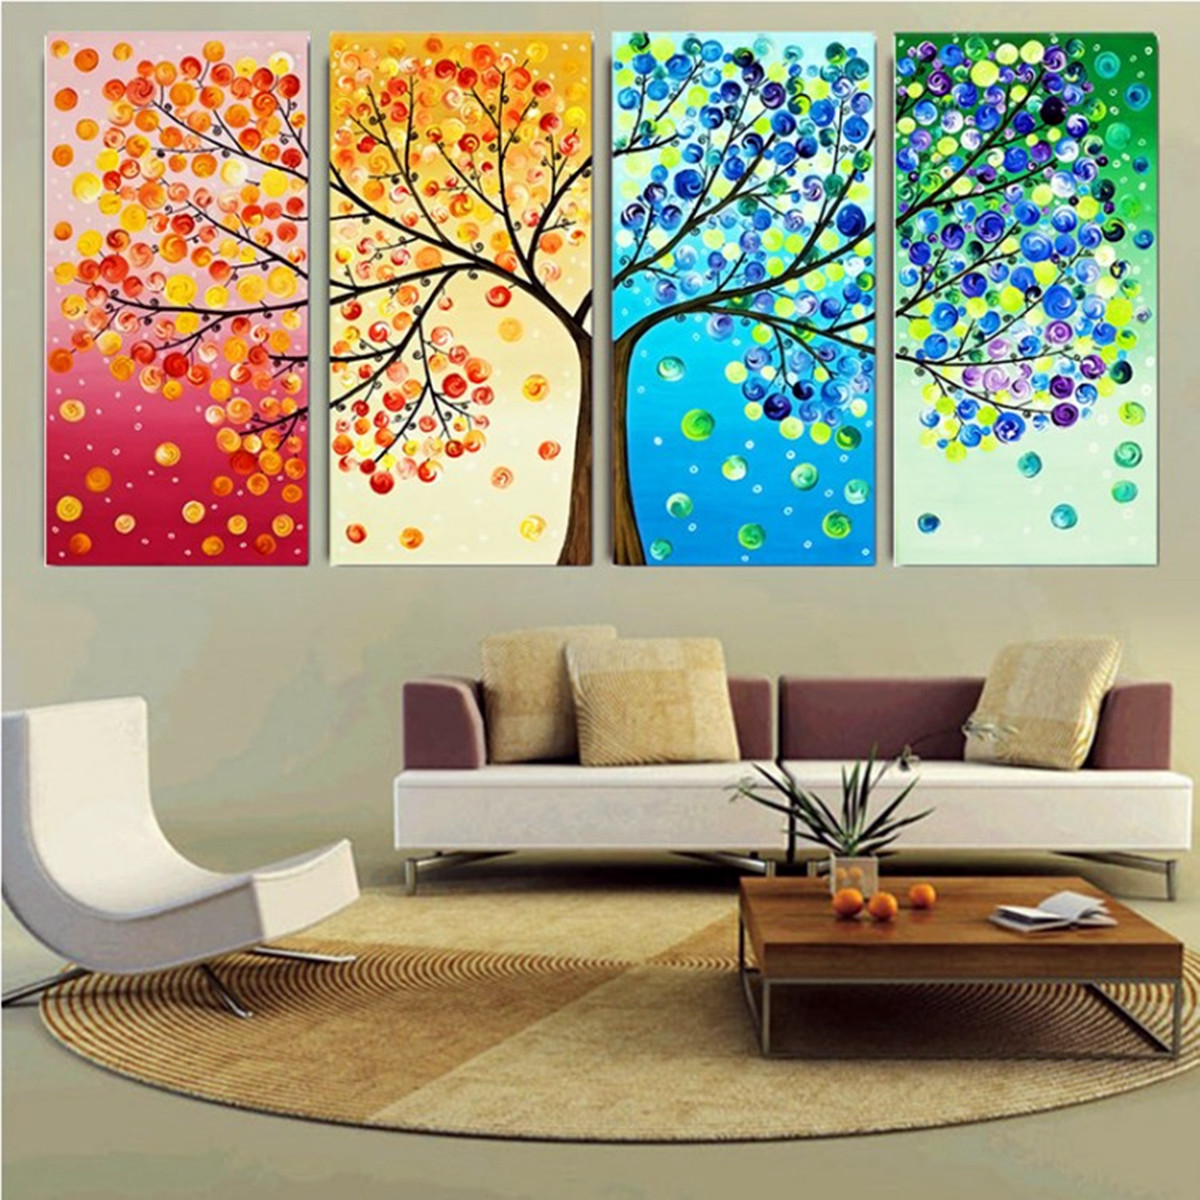 Diy handmade colorful season tree counted cross stitch for Art home decoration